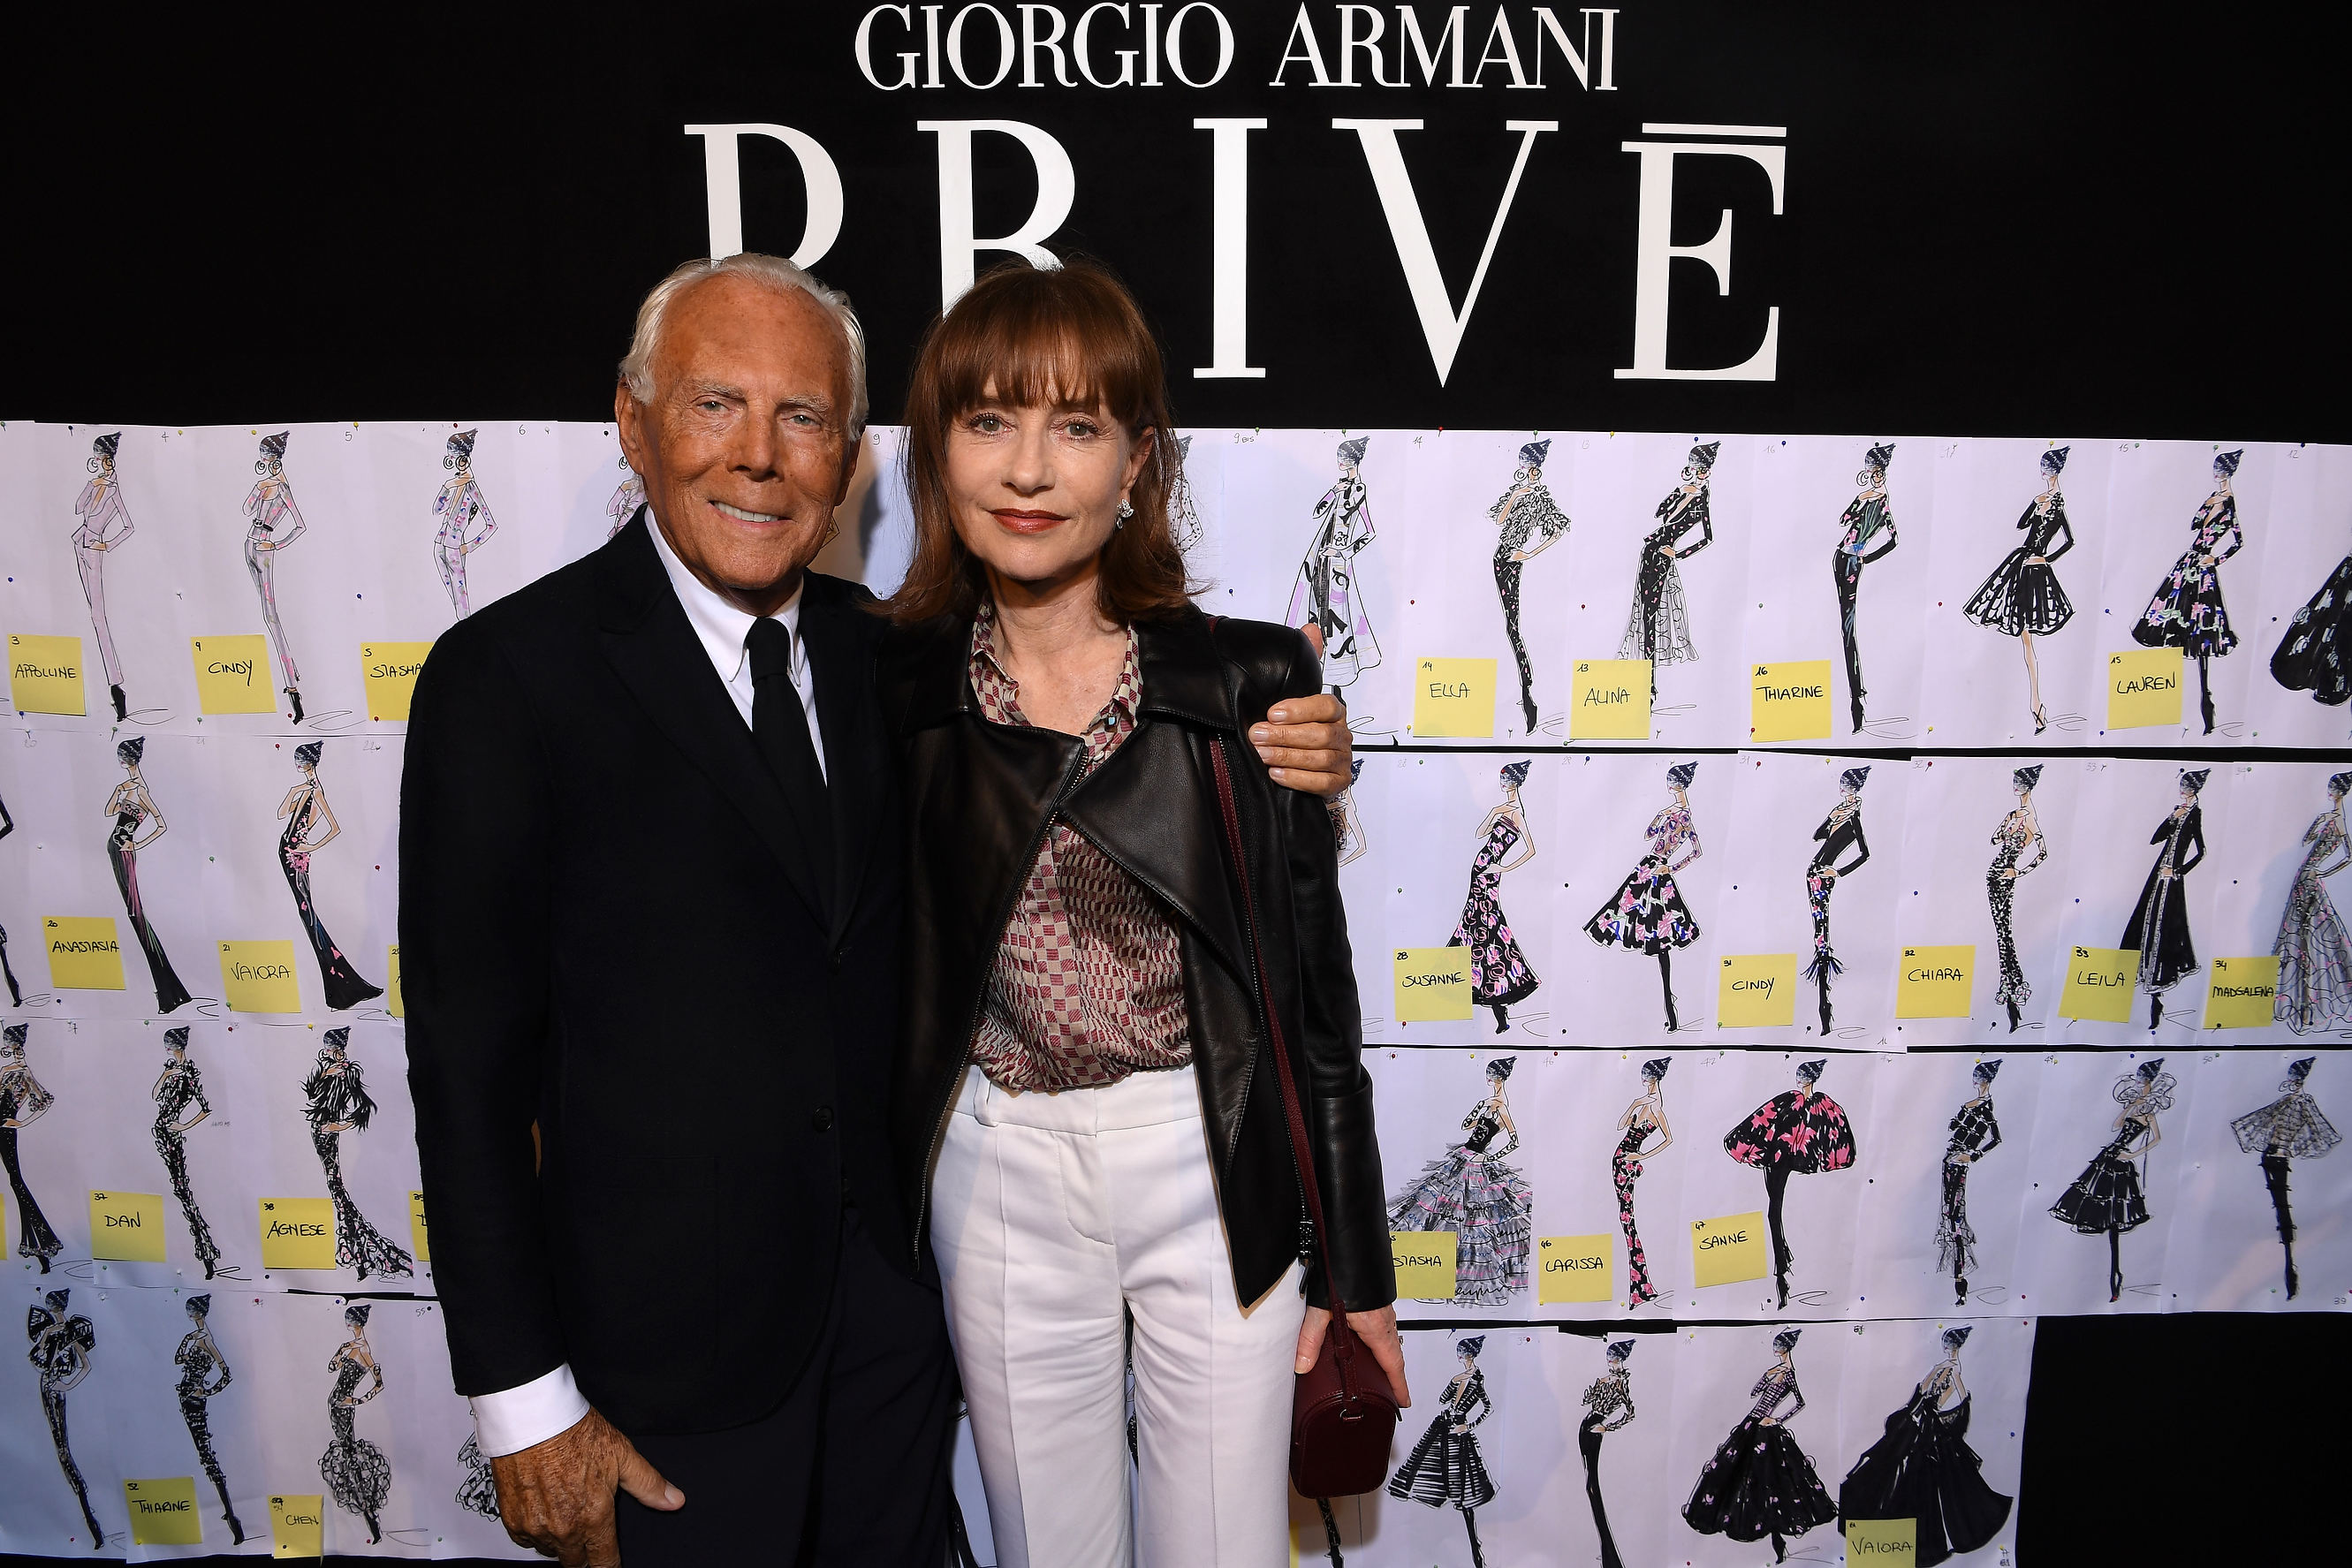 giorgio-armani-and-isabelle-huppert_sgp